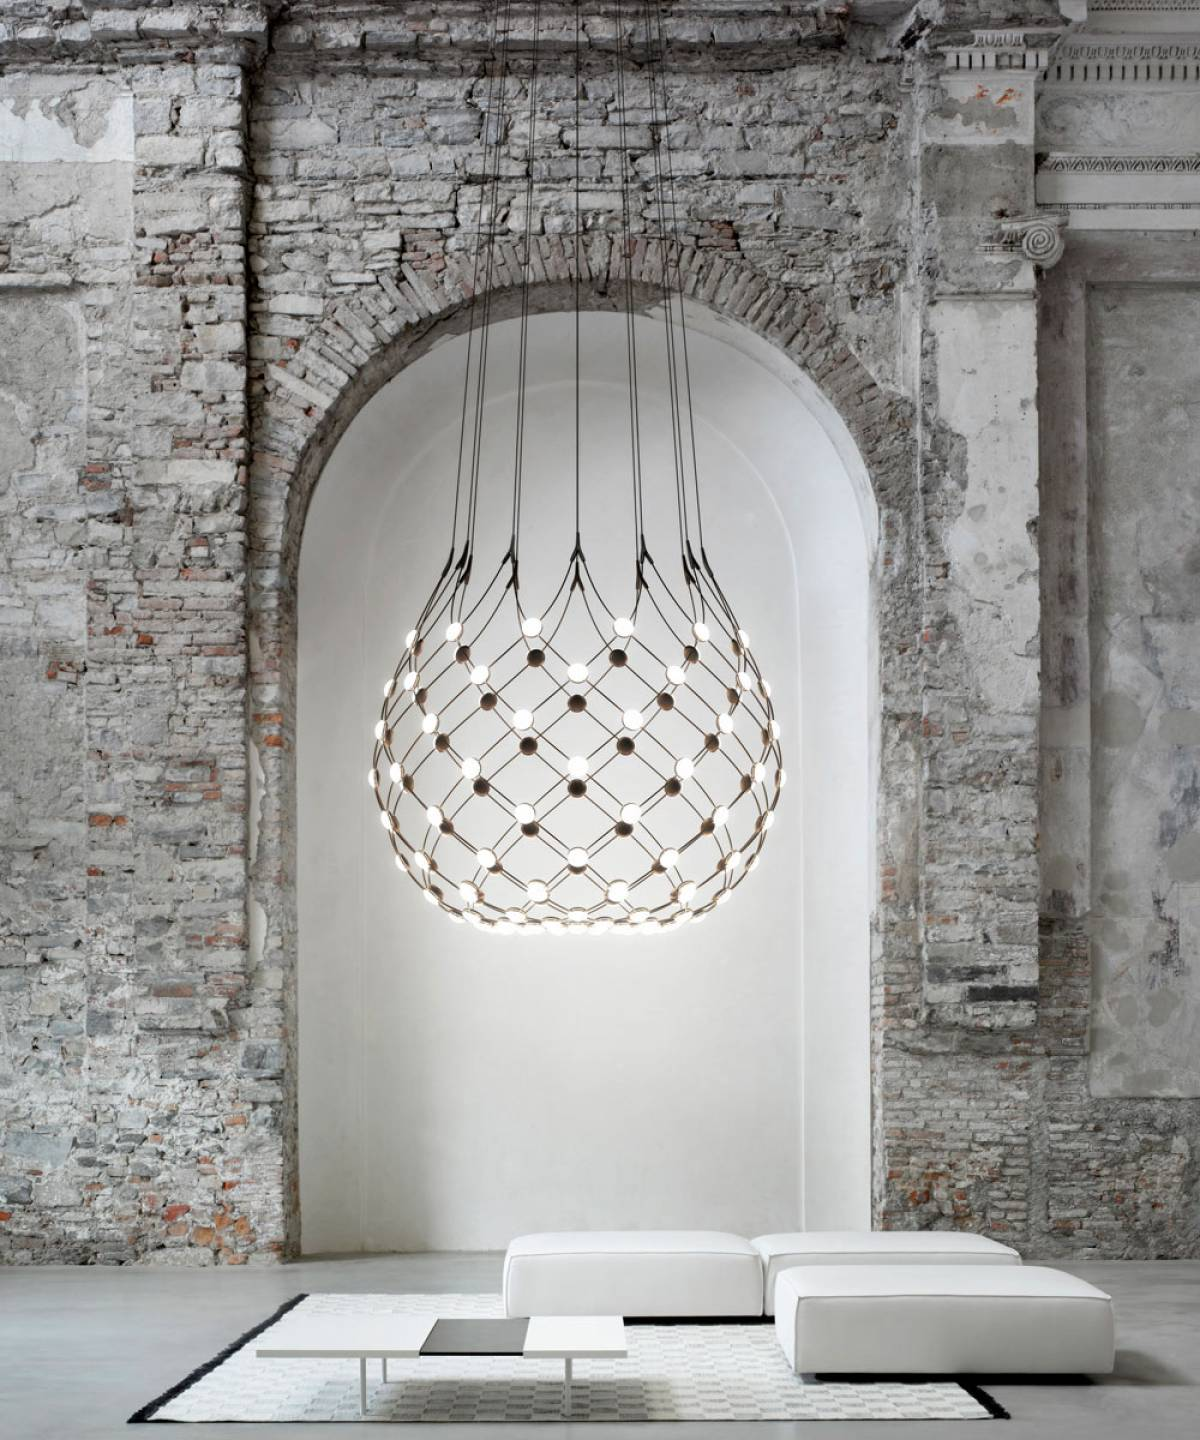 Mesh suspension lamp Luceplan